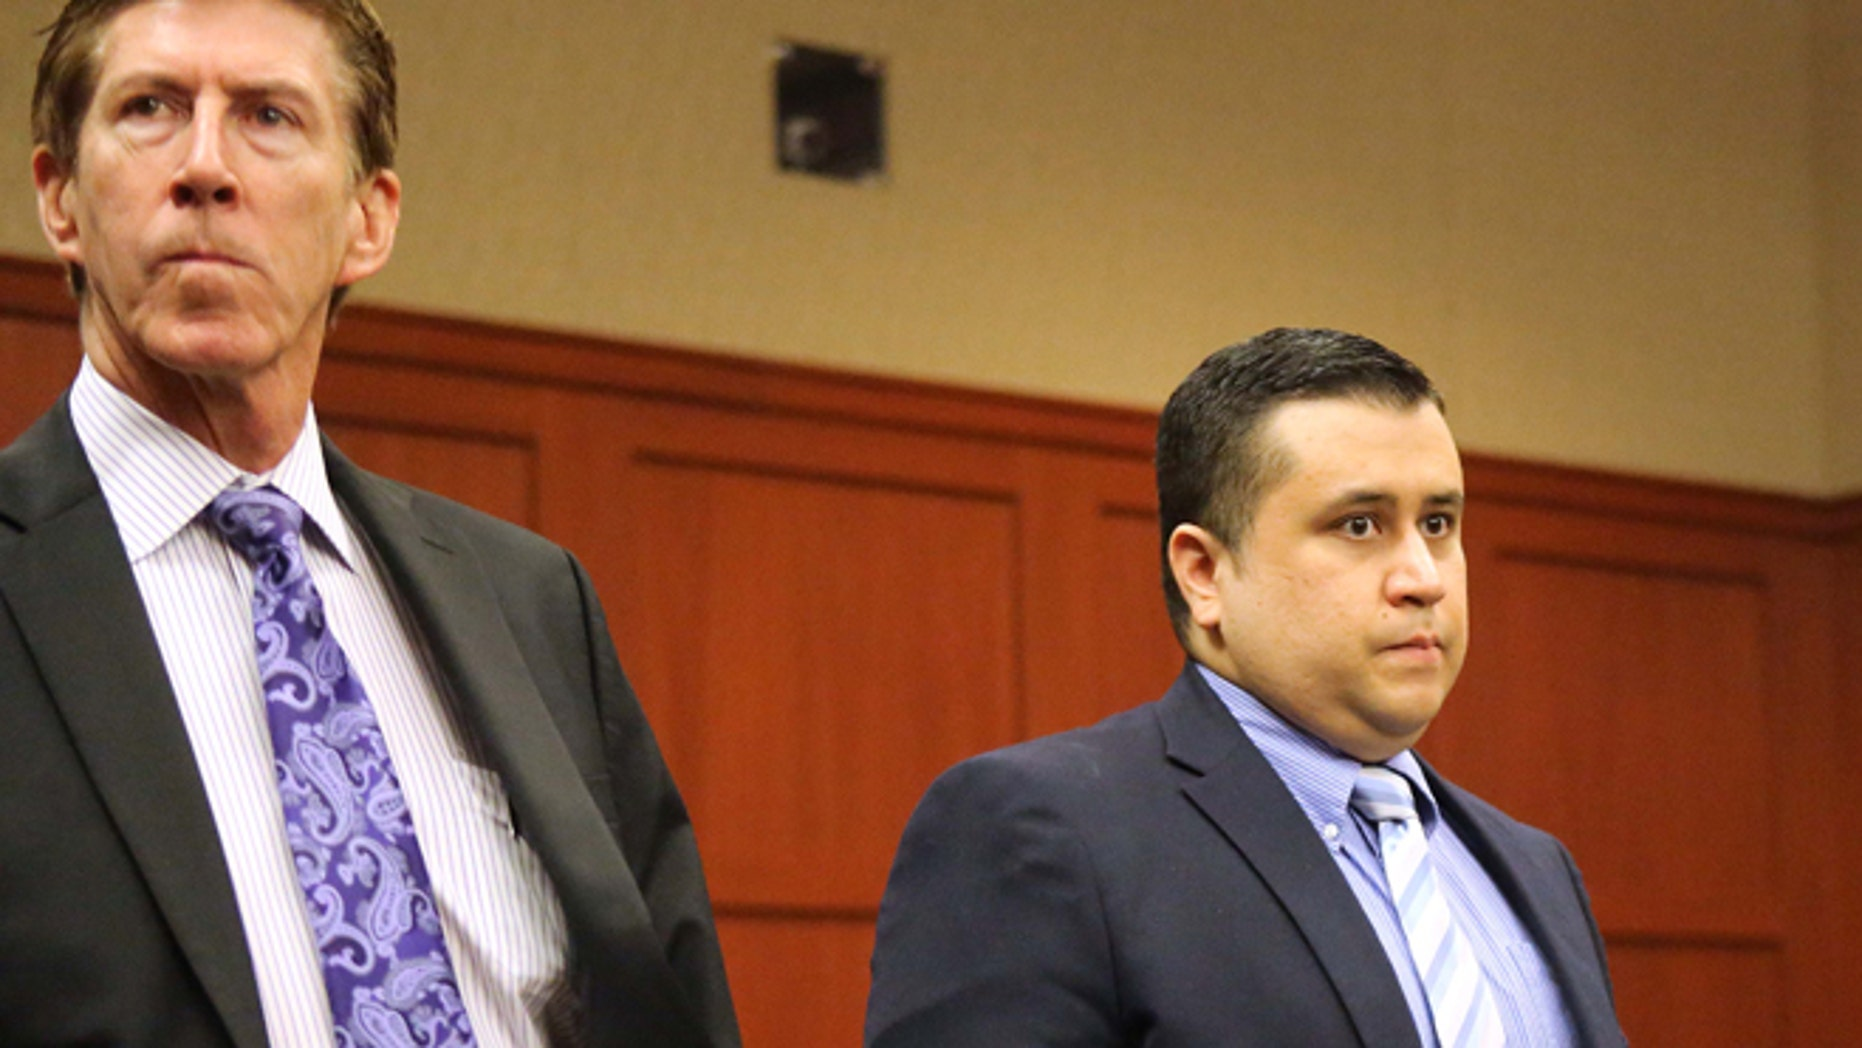 Feb. 5: George Zimmerman, right, wears a bulletproof vest in public, Mark O'Mara, left, his attorney, says.